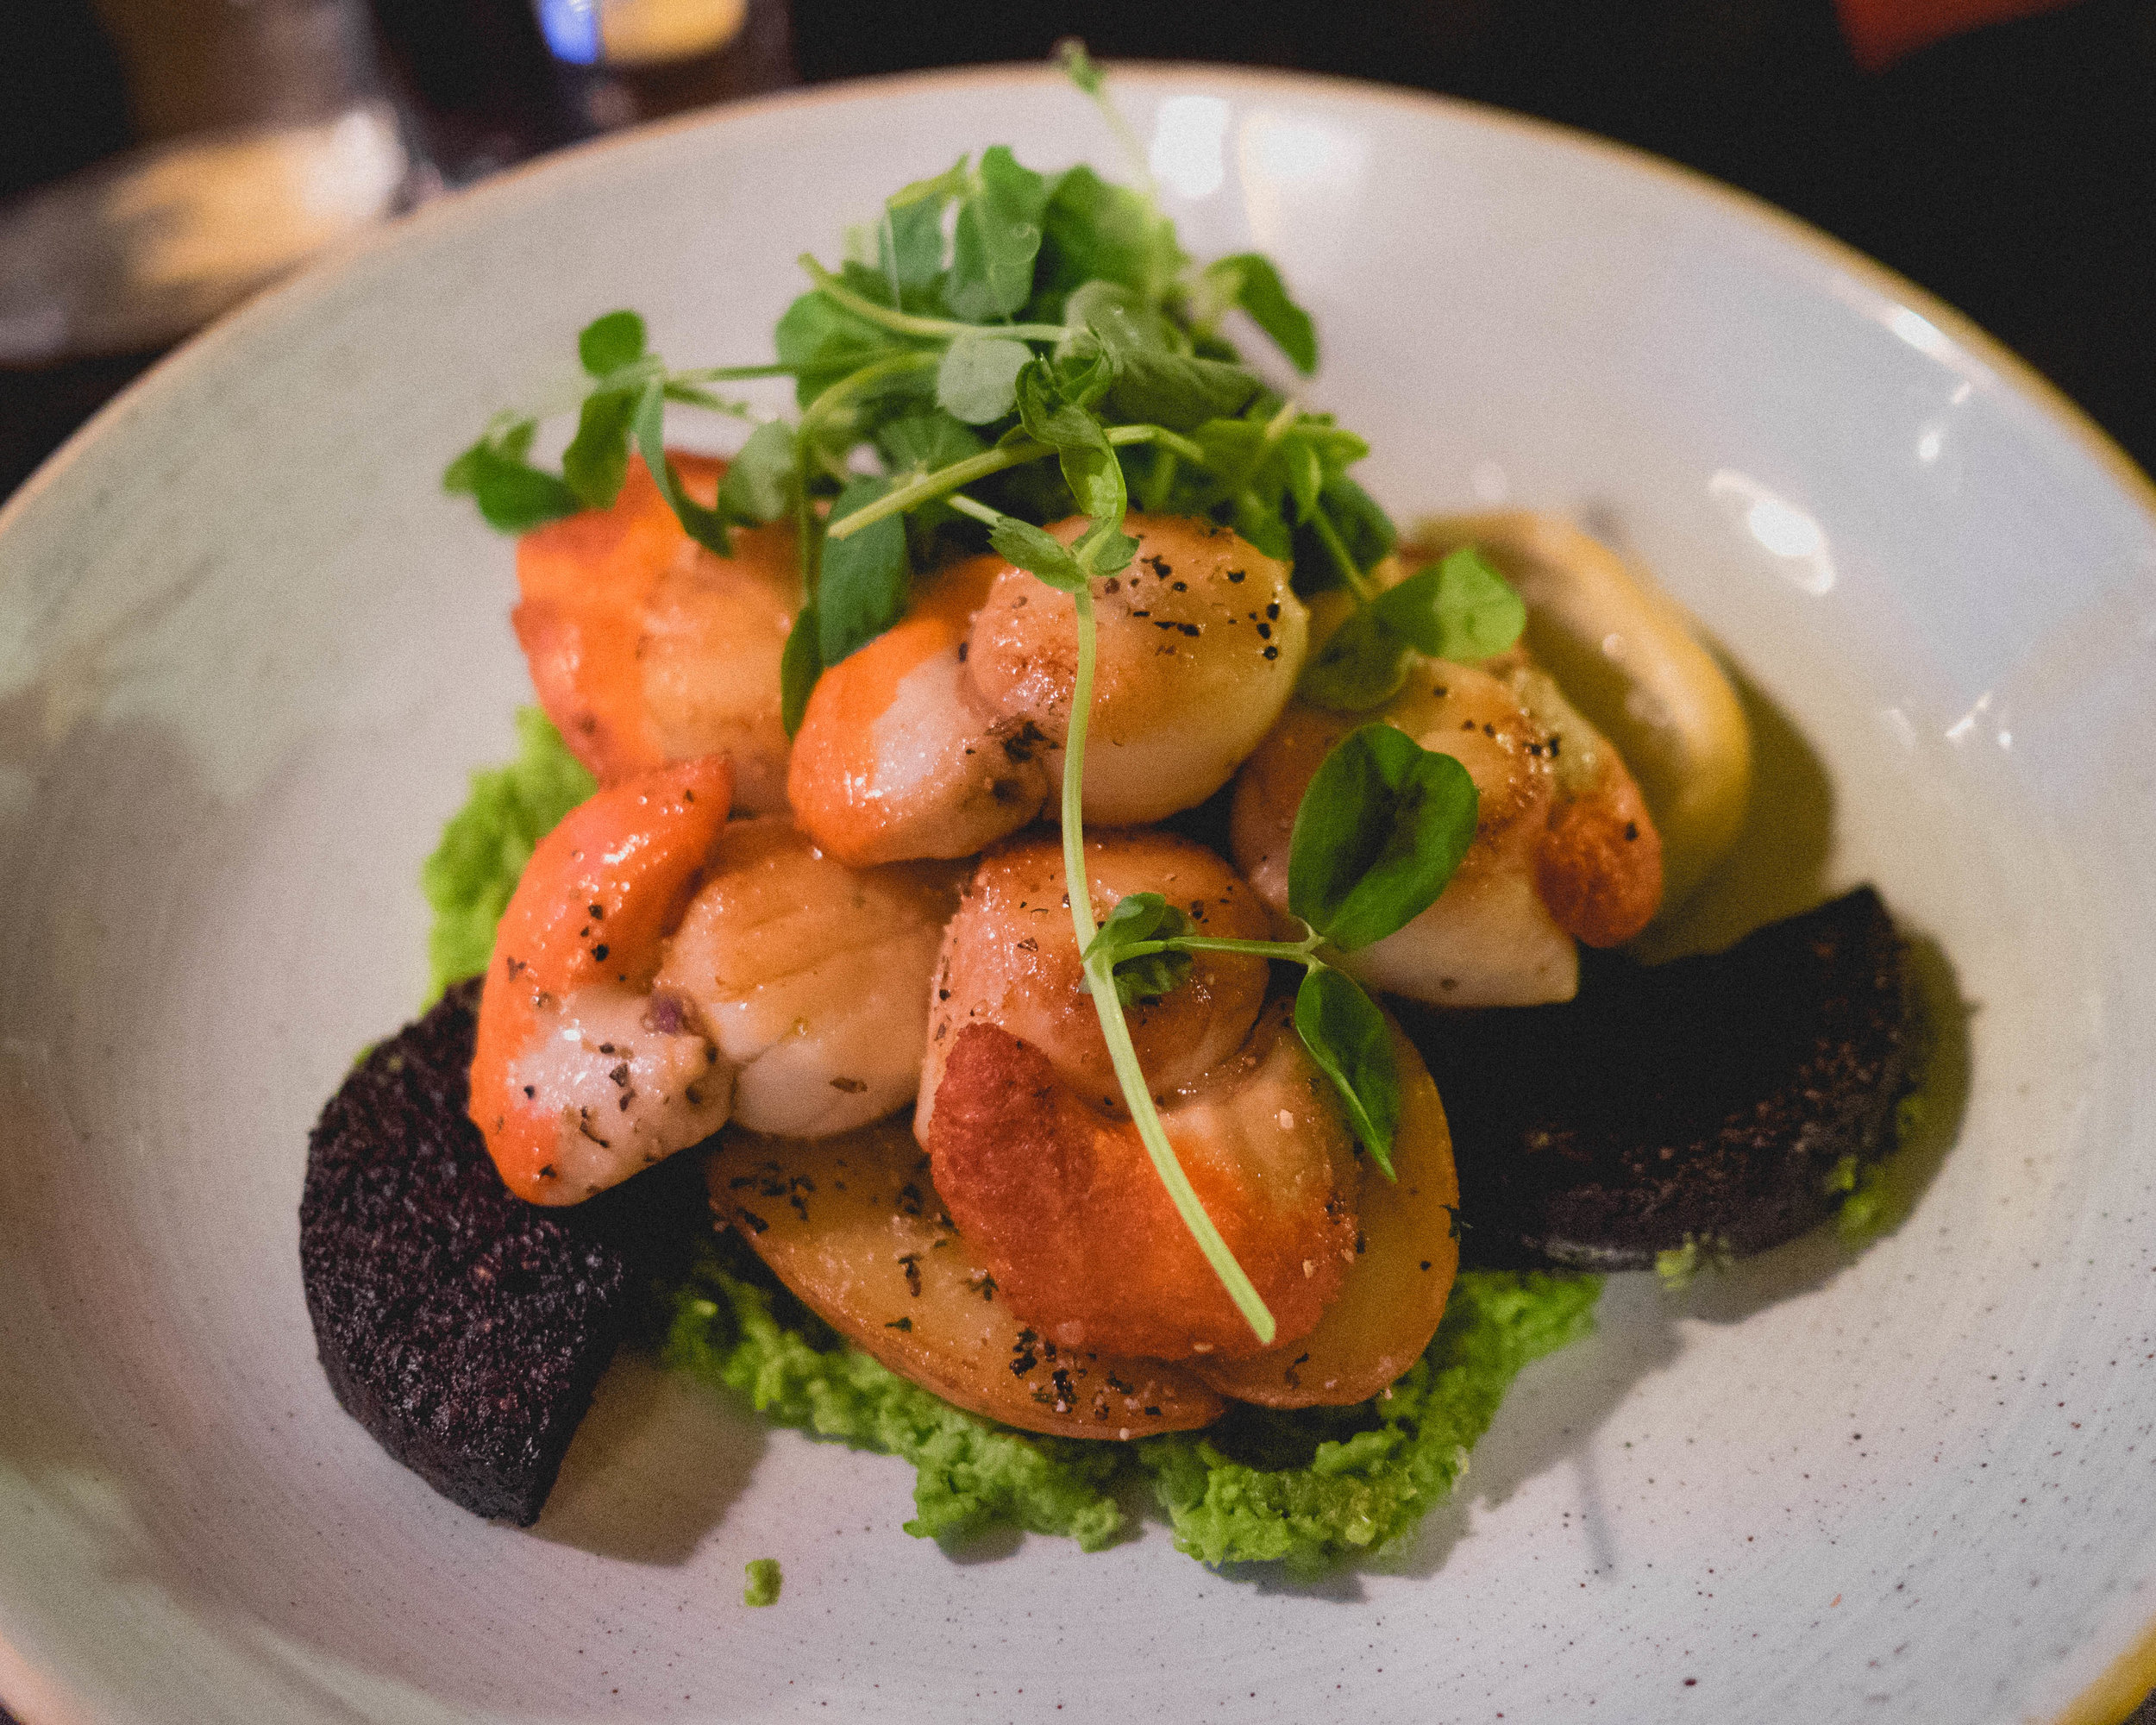 island pan fried scallops  served atop stornoway black pudding, garden pea puree, bacon crumble and sauteed potatoes.